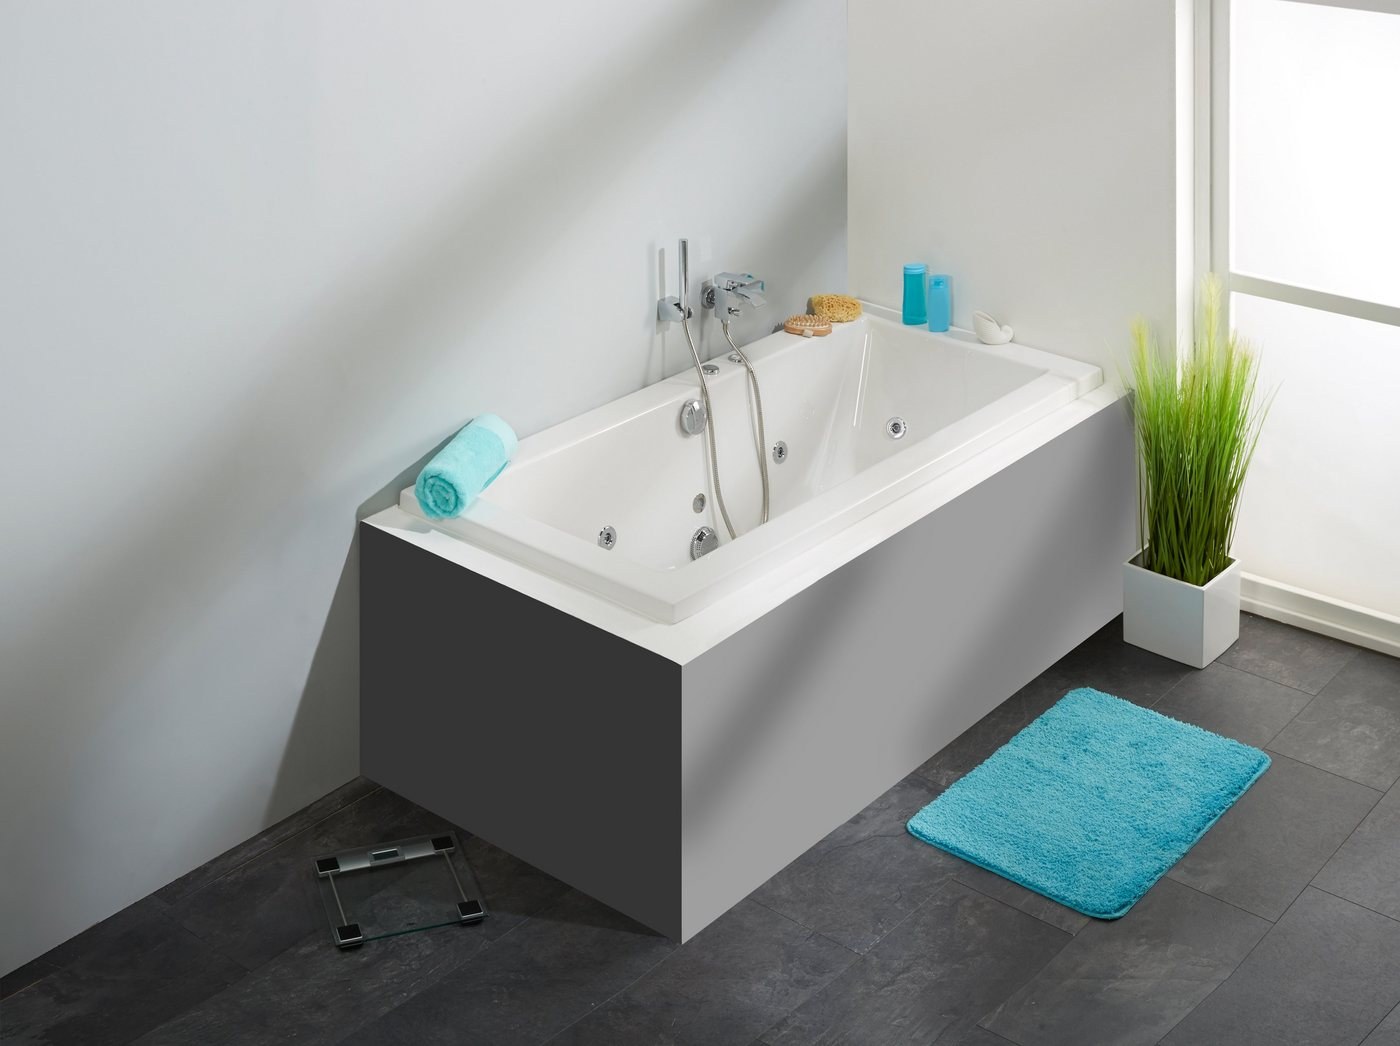 OTTOFOND Whirlpoolwanne »Cubic«, B/T/H in cm: 170/75/62,5; mit Whirlpool-System 1